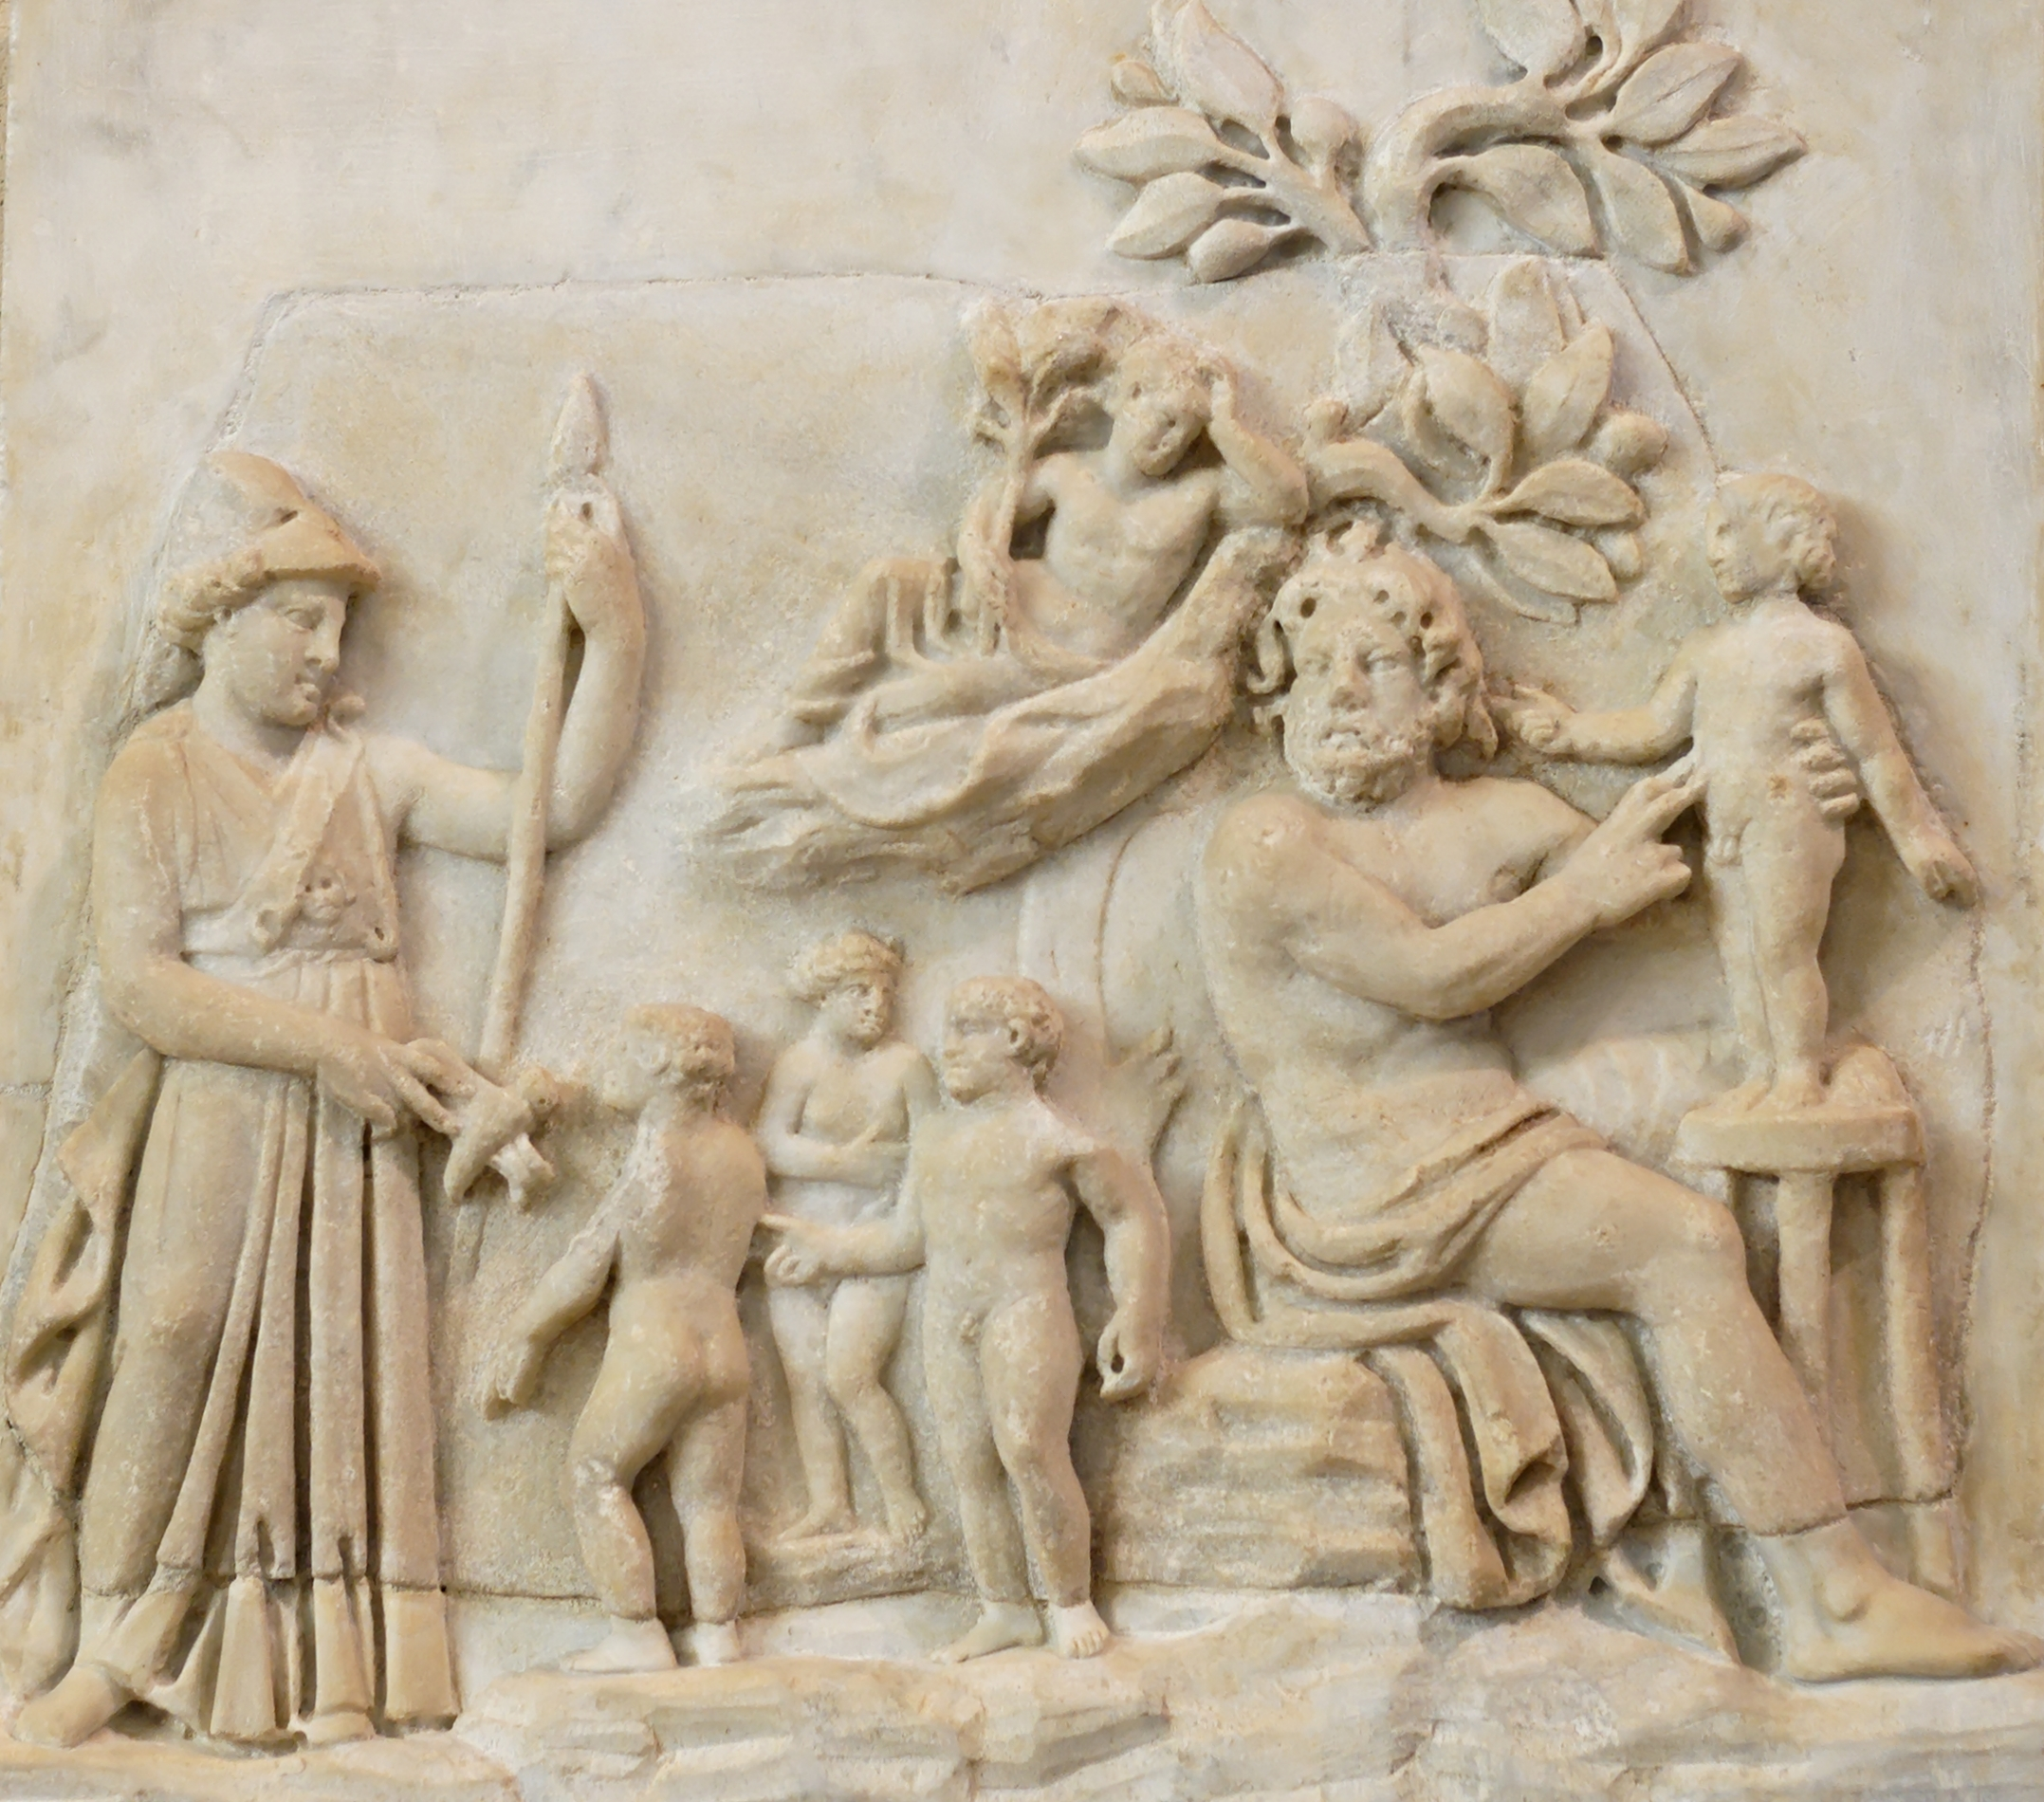 Roman-era relief showing Prometheus creating humanity under the watchful eye of Athena